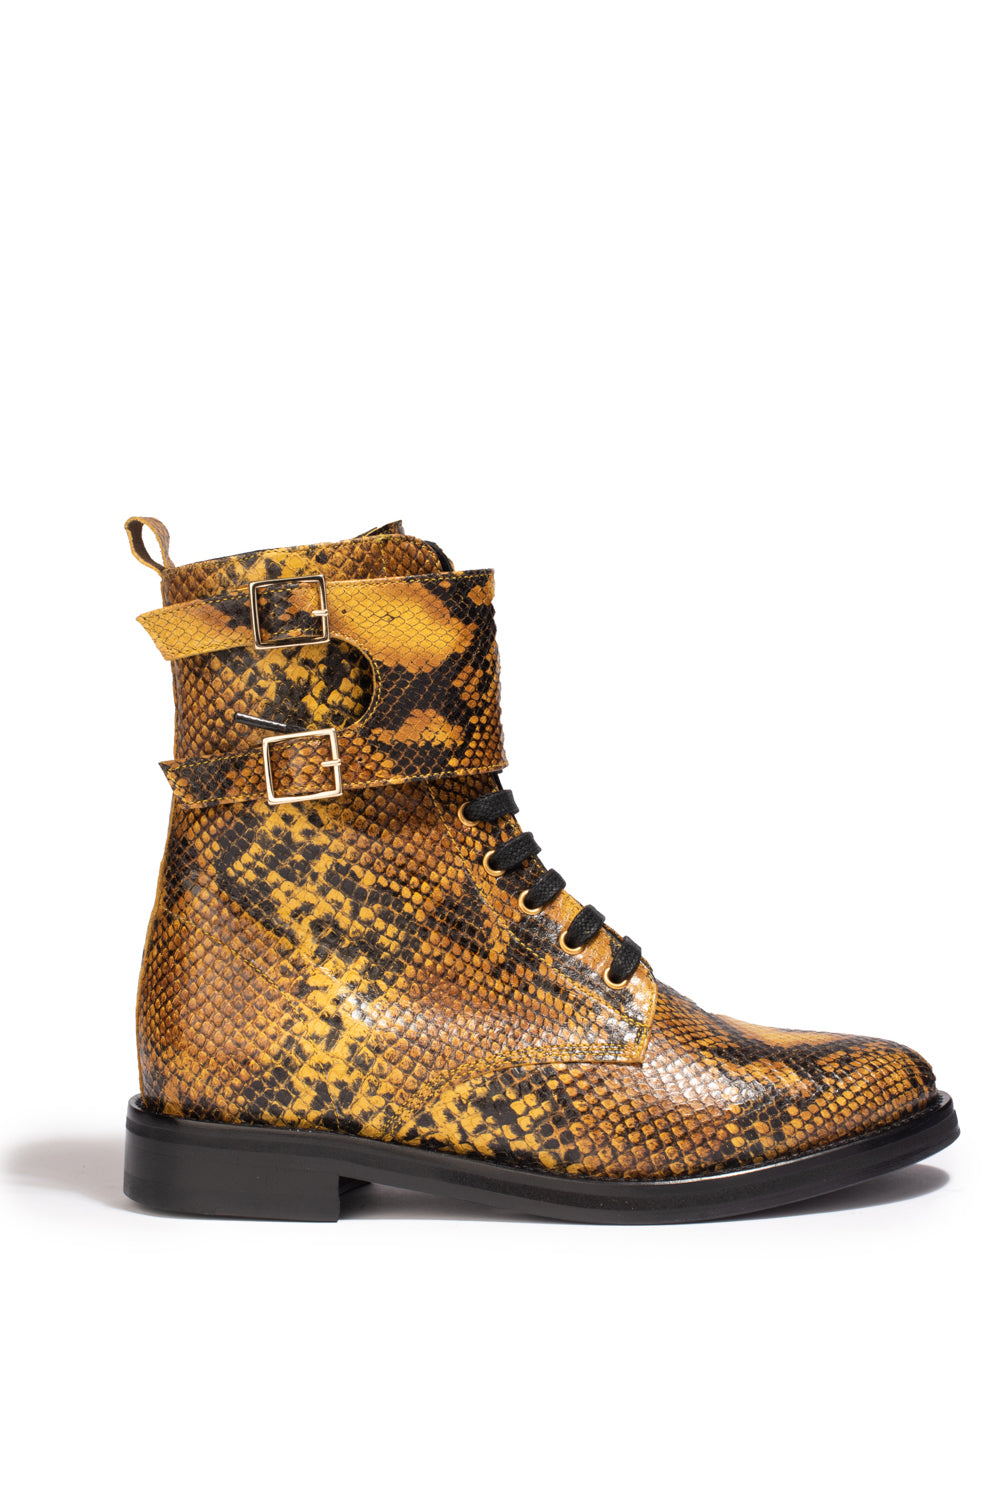 Bottines London Python Jaune - Anaki Paris